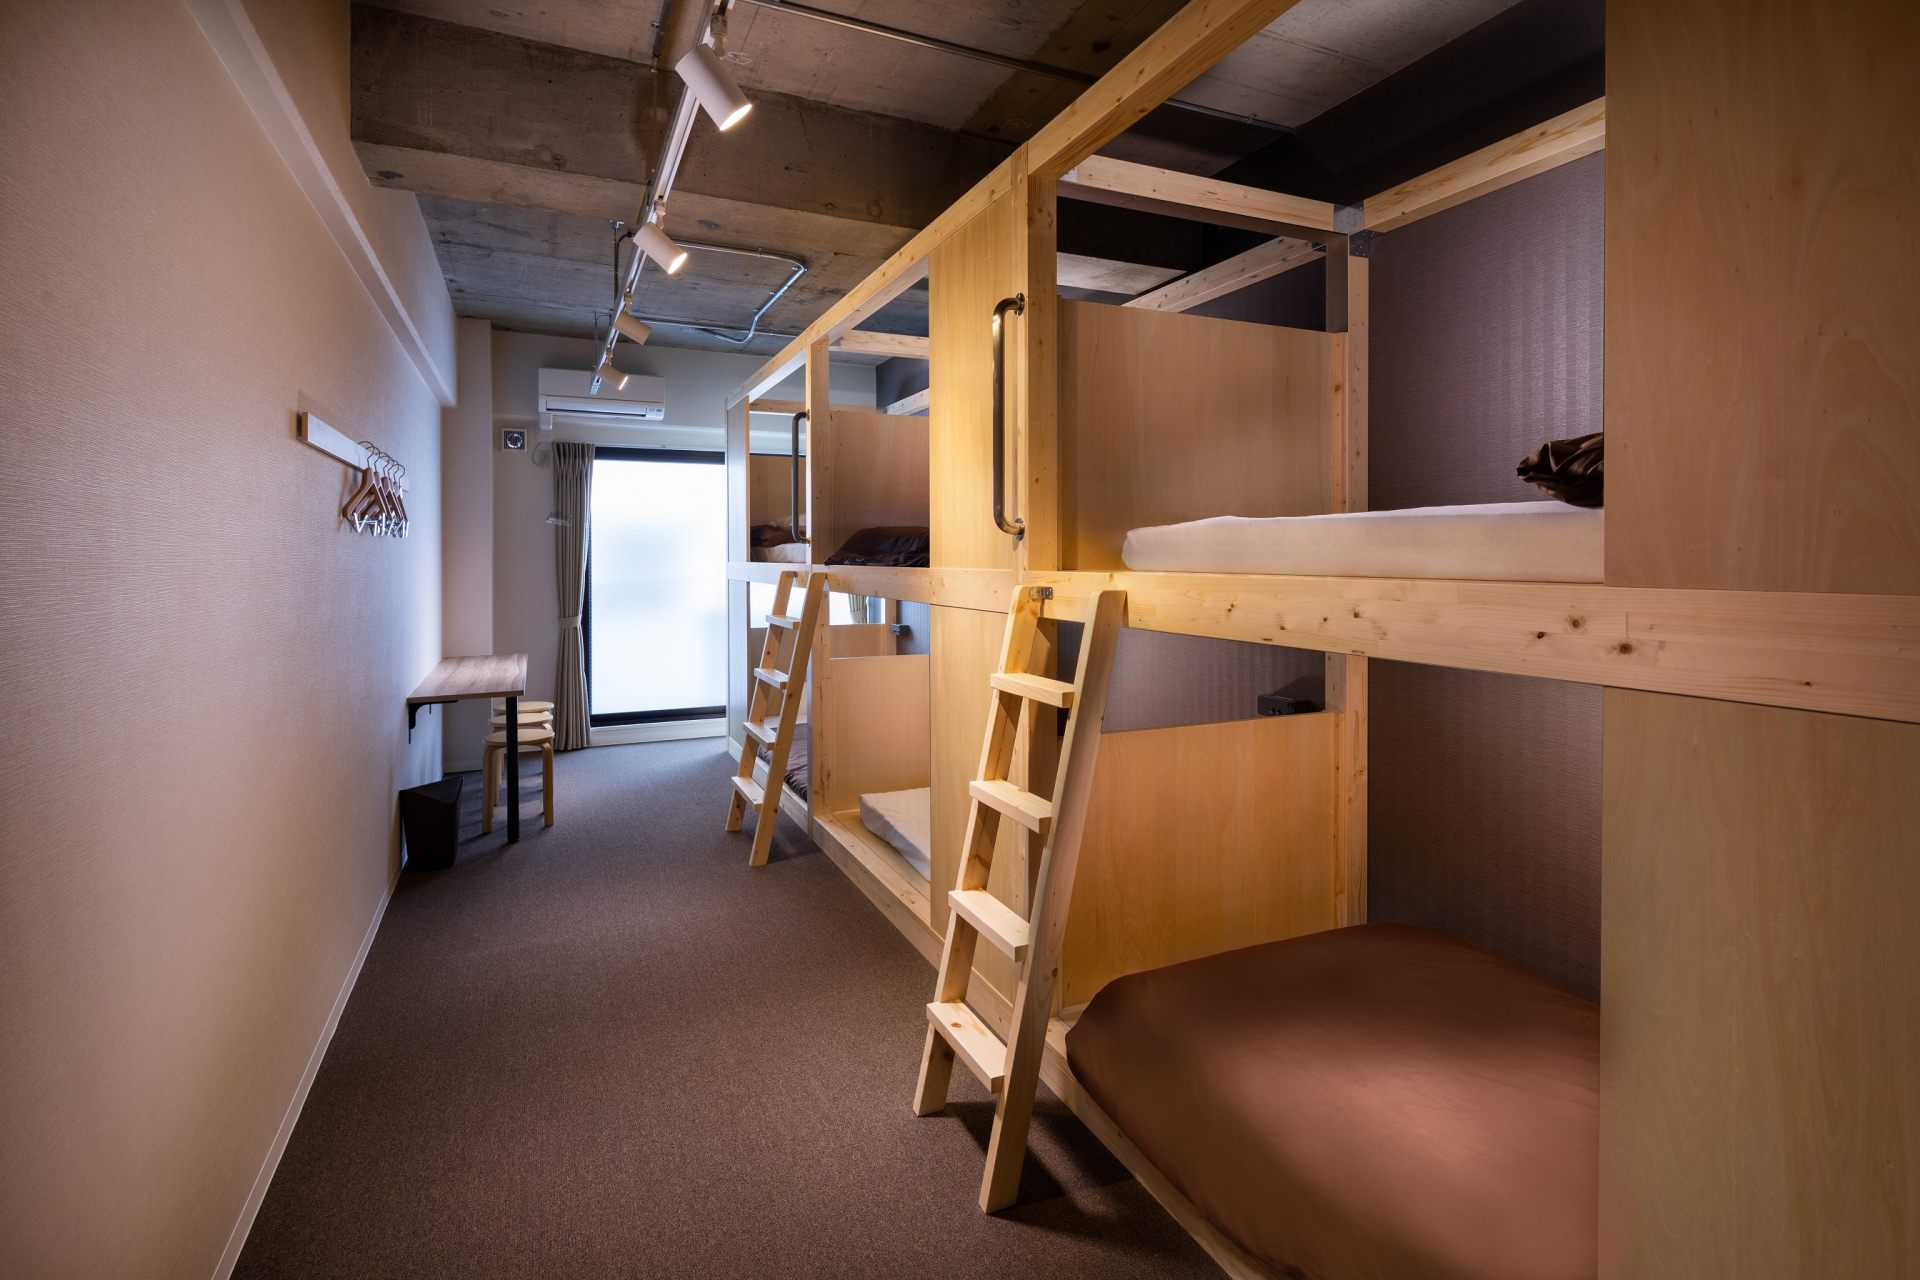 6-person room, ideal for groups and families